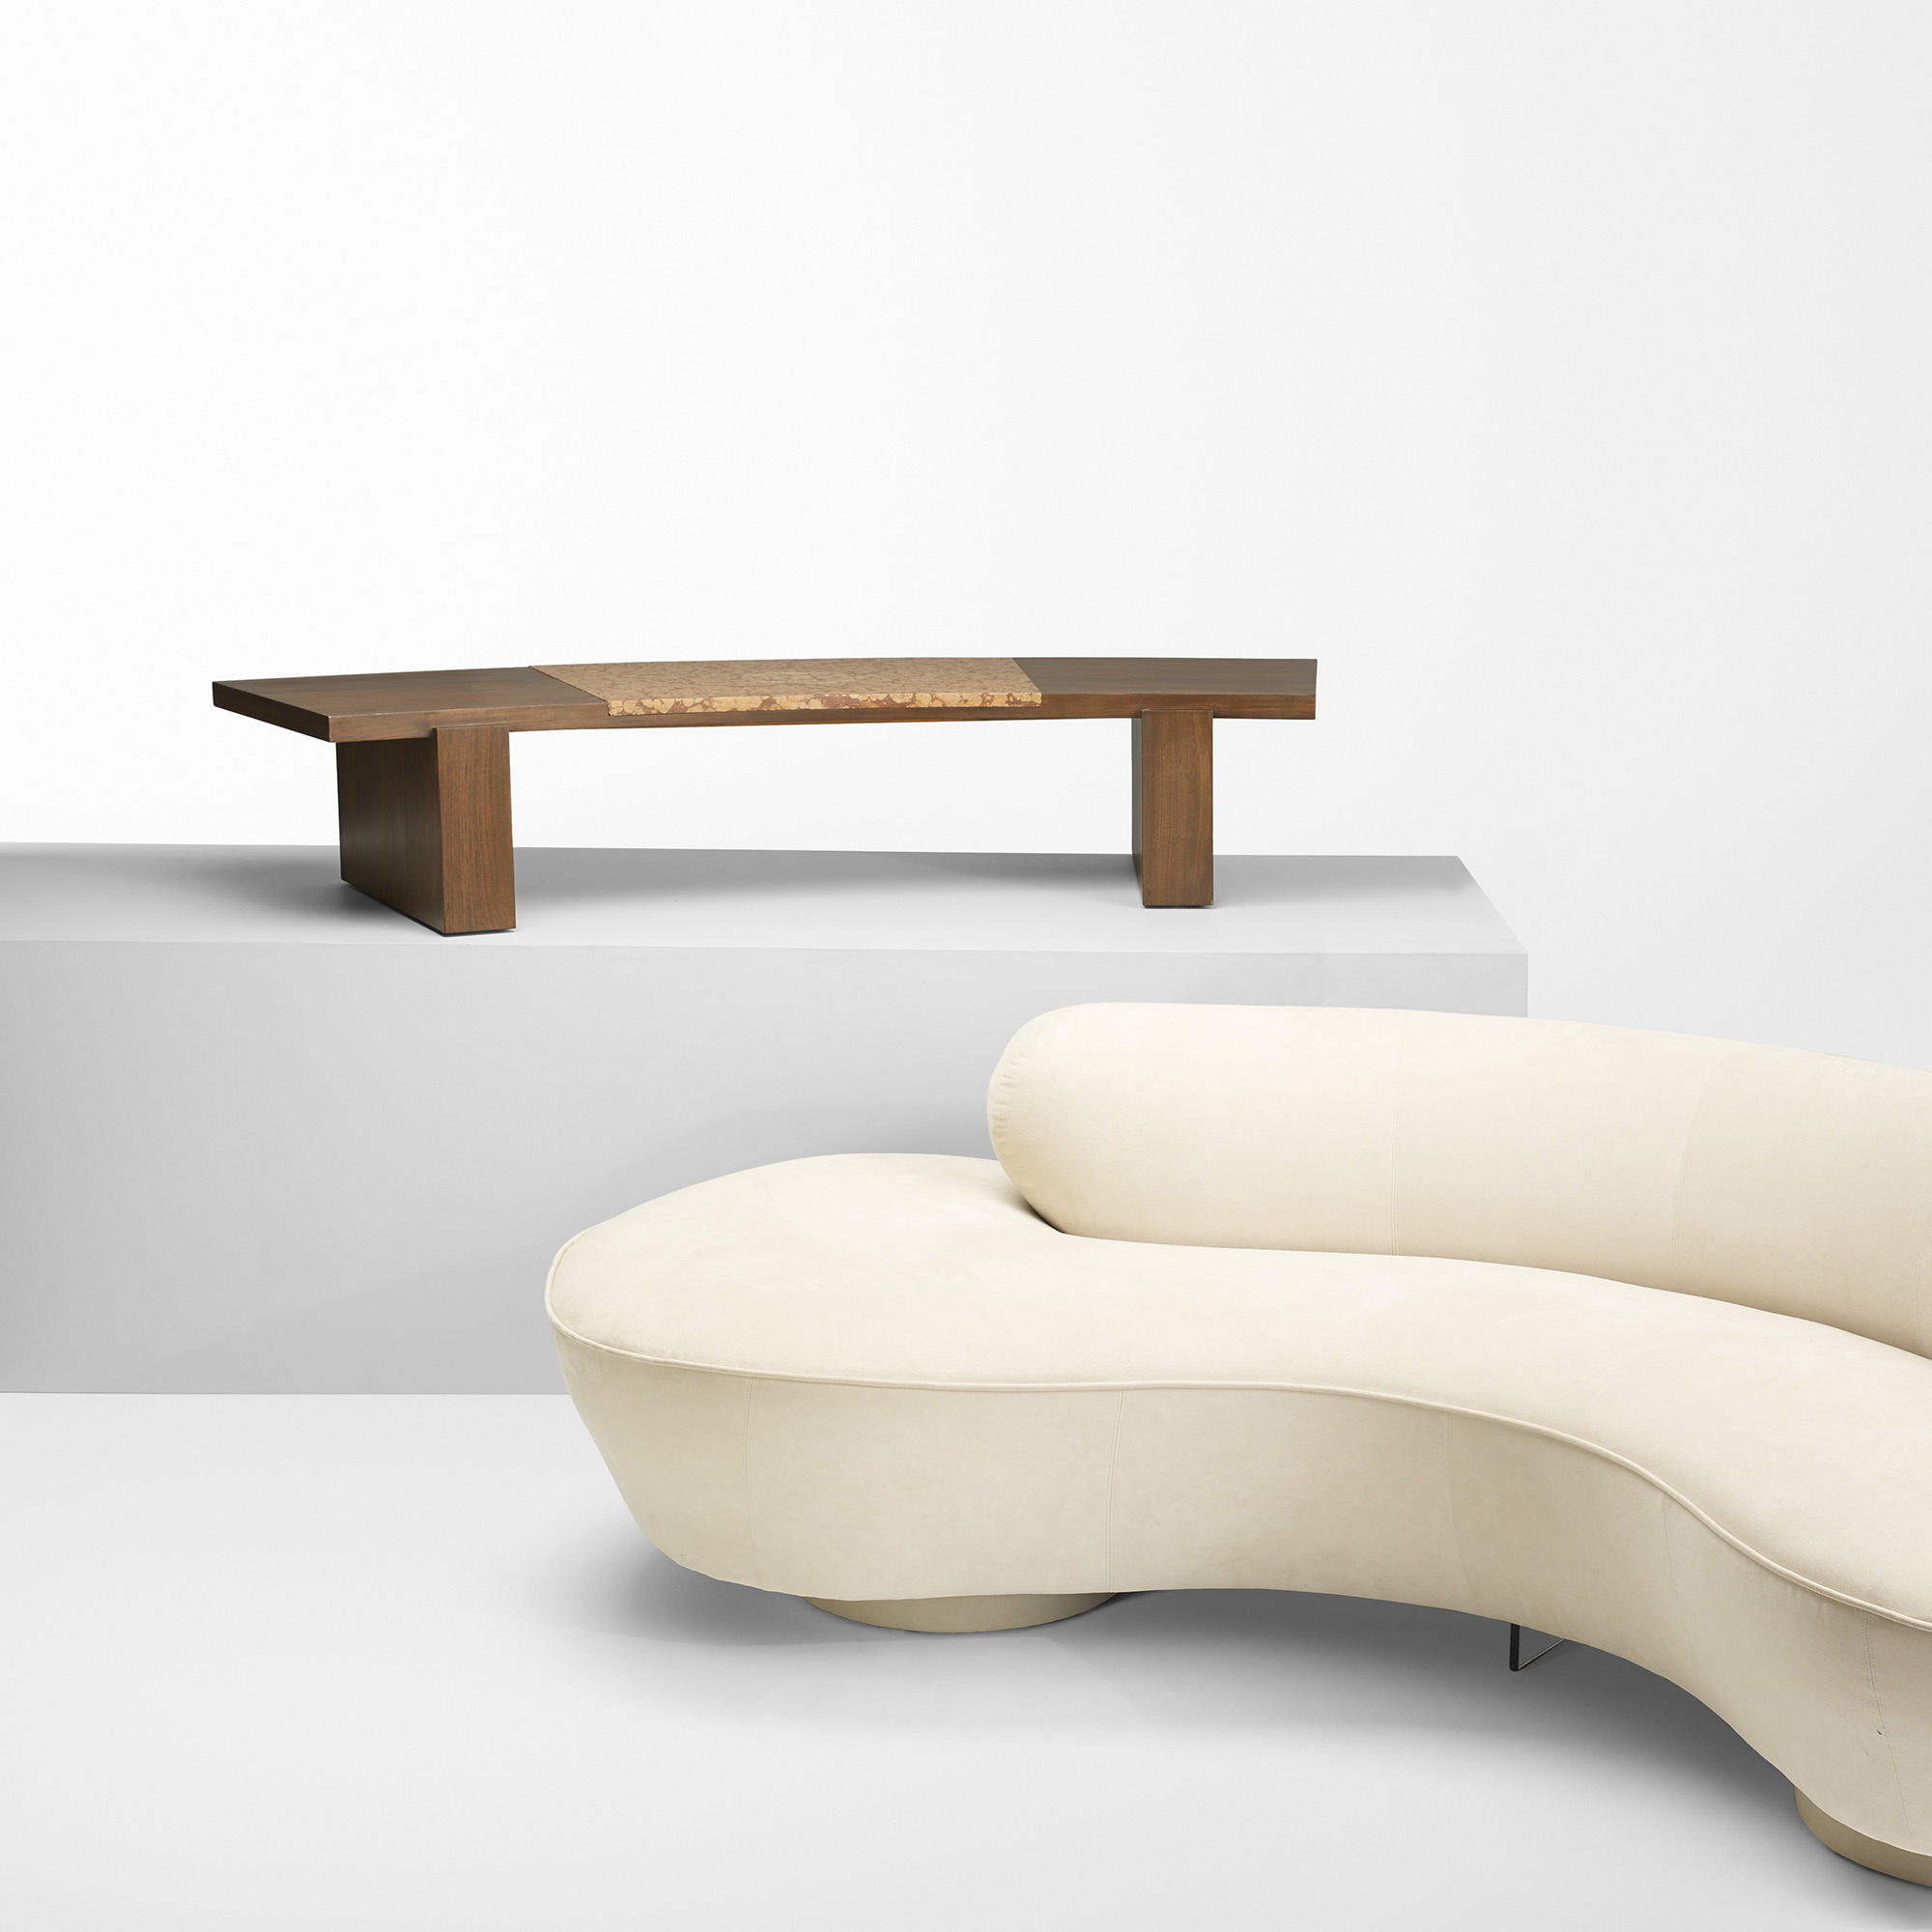 472 Vladimir Kagan coffee table from a Manhattan Interior